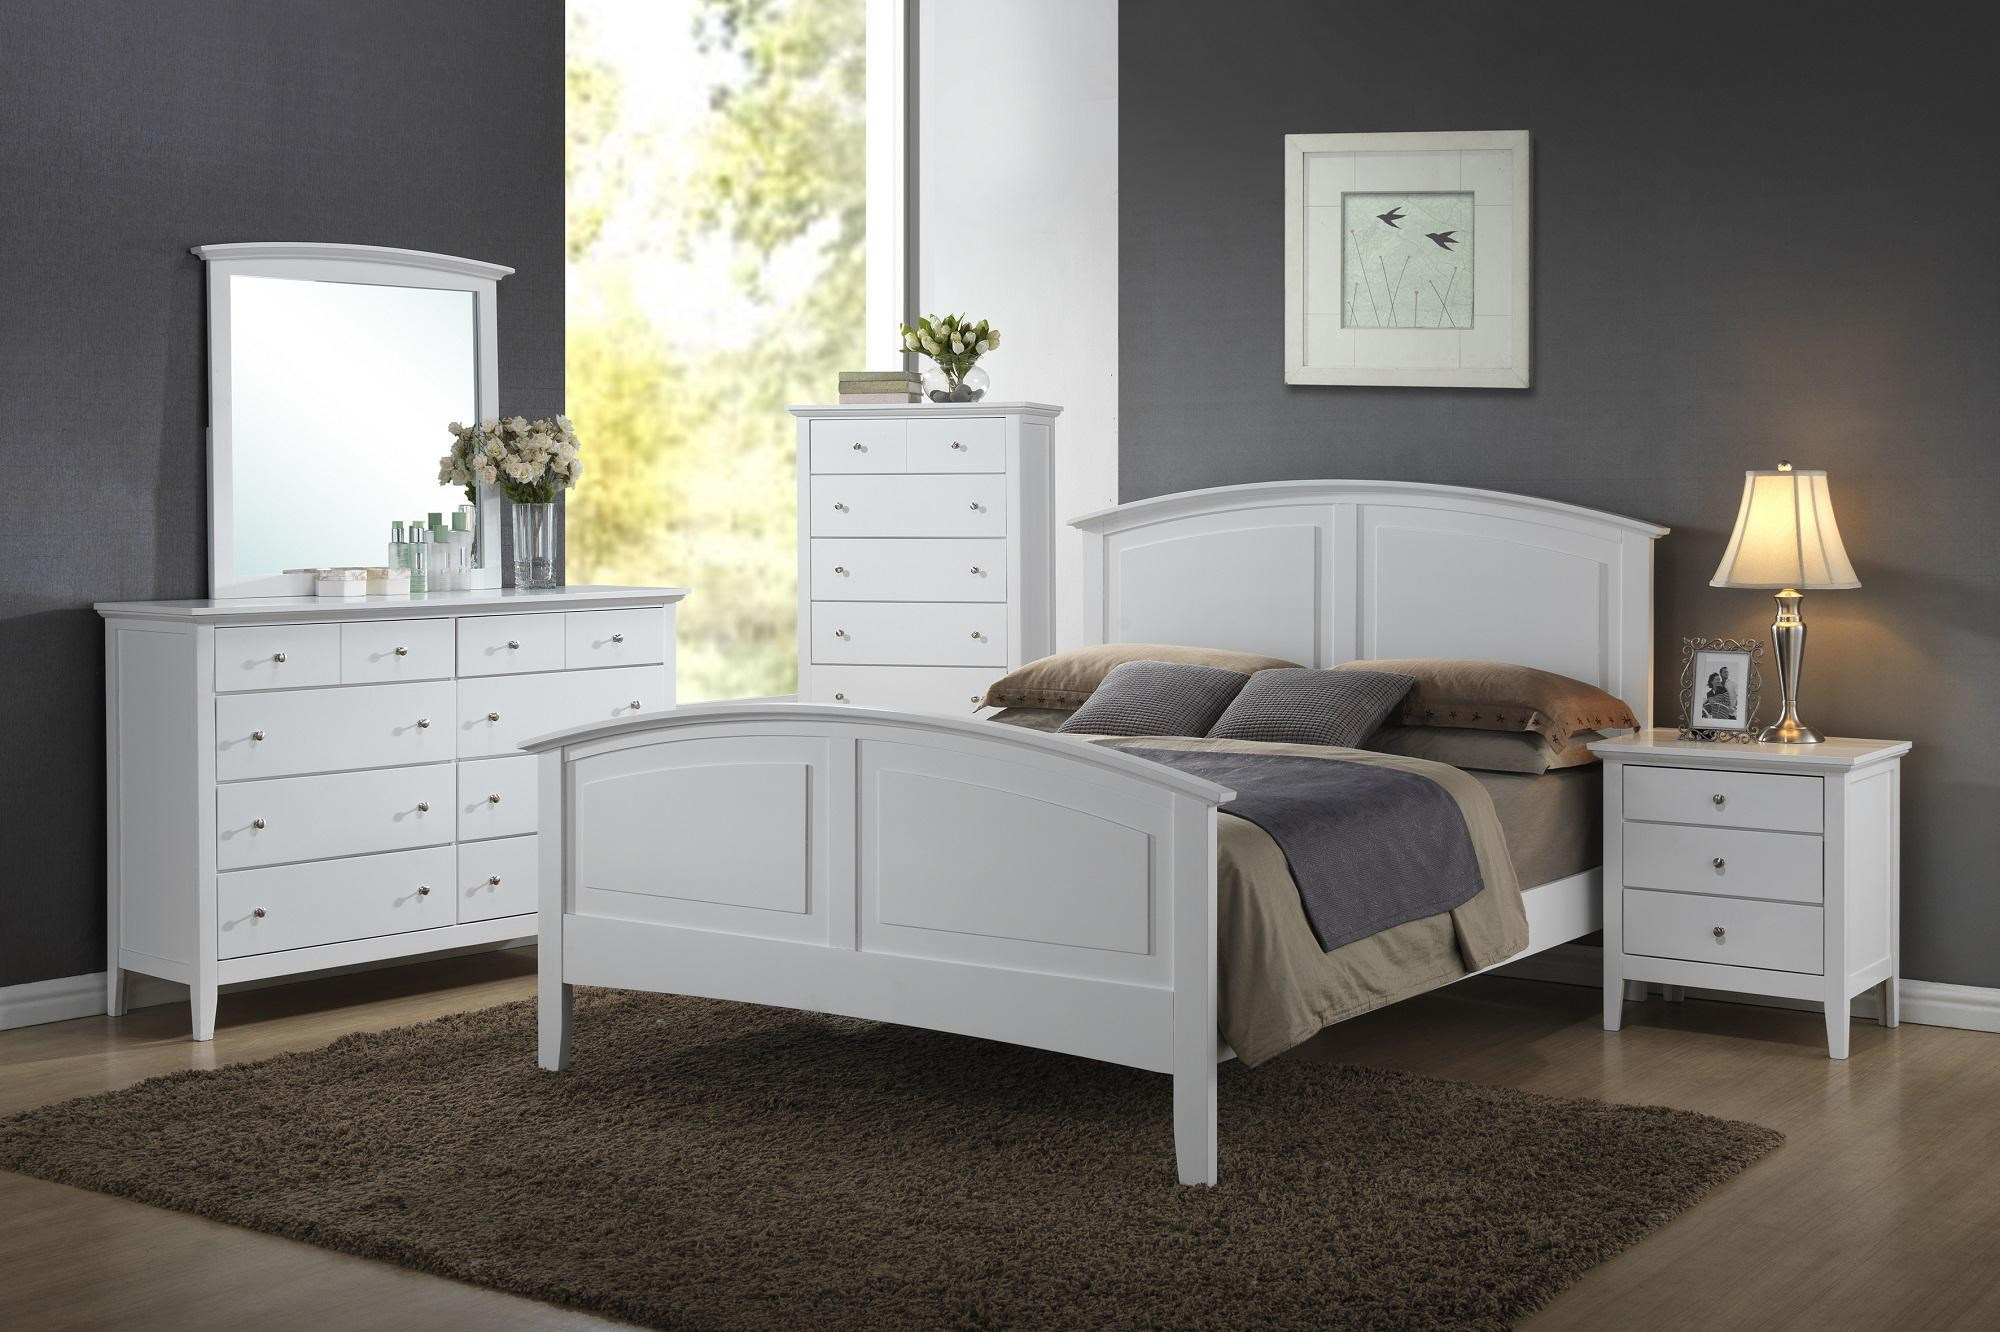 C3226A 6 Piece Twin Bedroom Group by Lifestyle at Sam Levitz Furniture